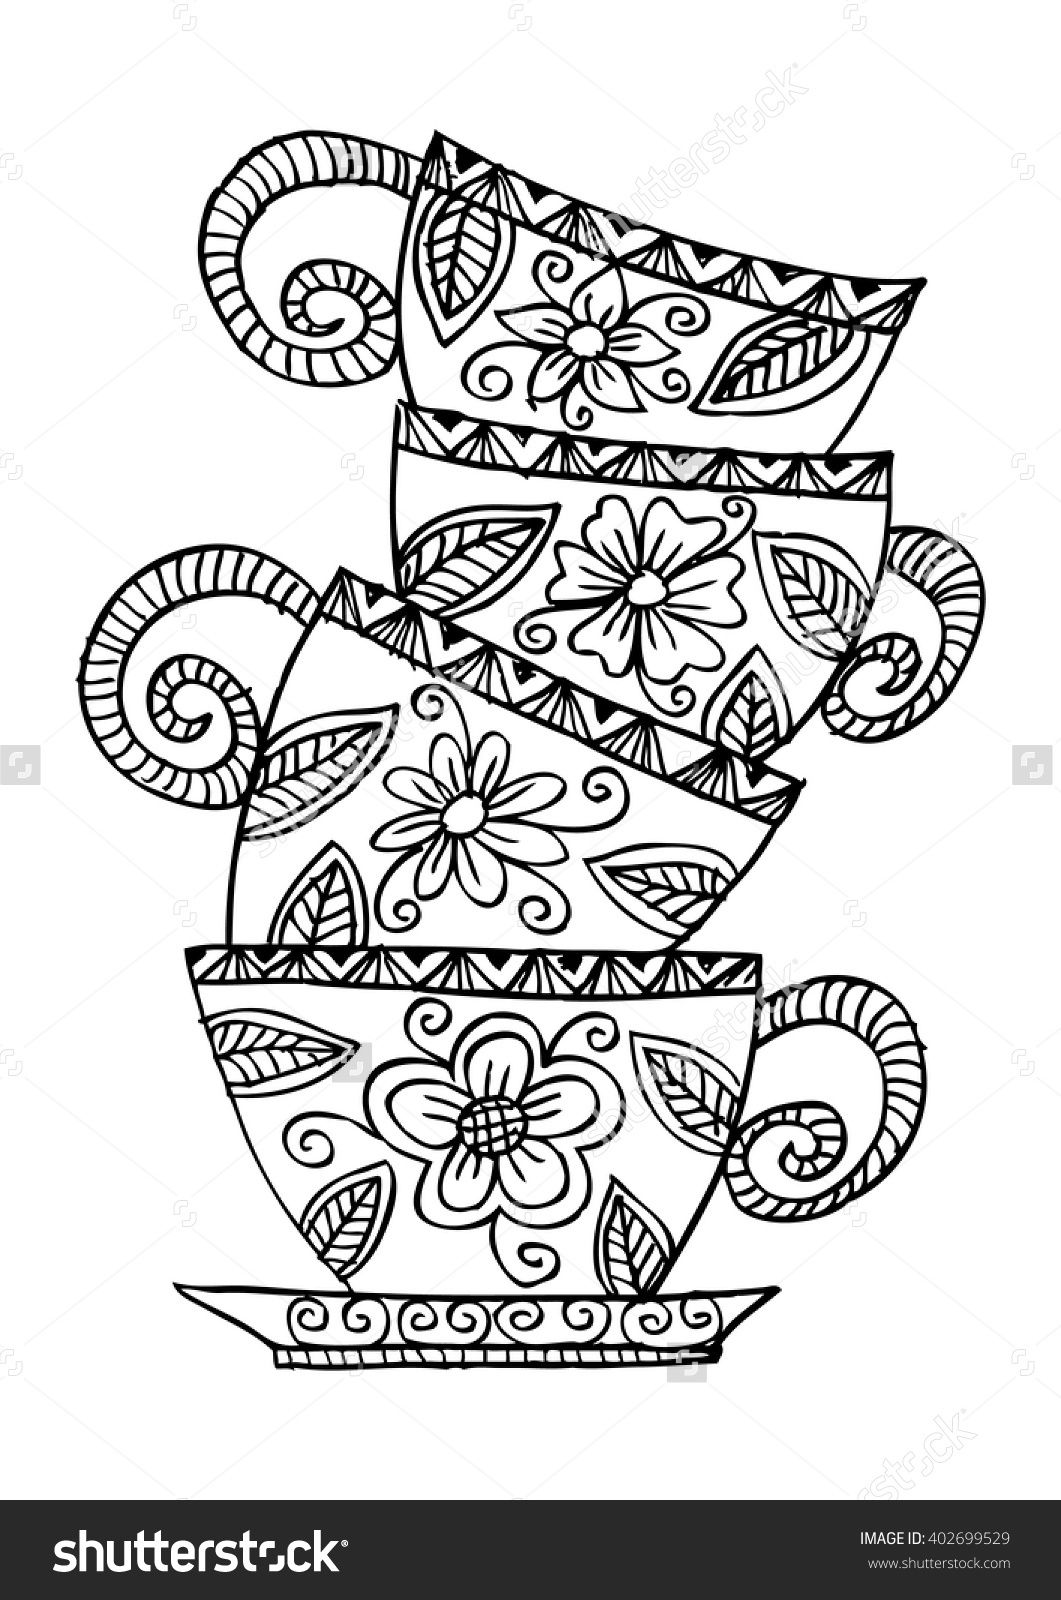 Coffee Cups Stacked Illustration 402699529 Shutterstock Coloring Pages Coloring Books Doodle Coloring